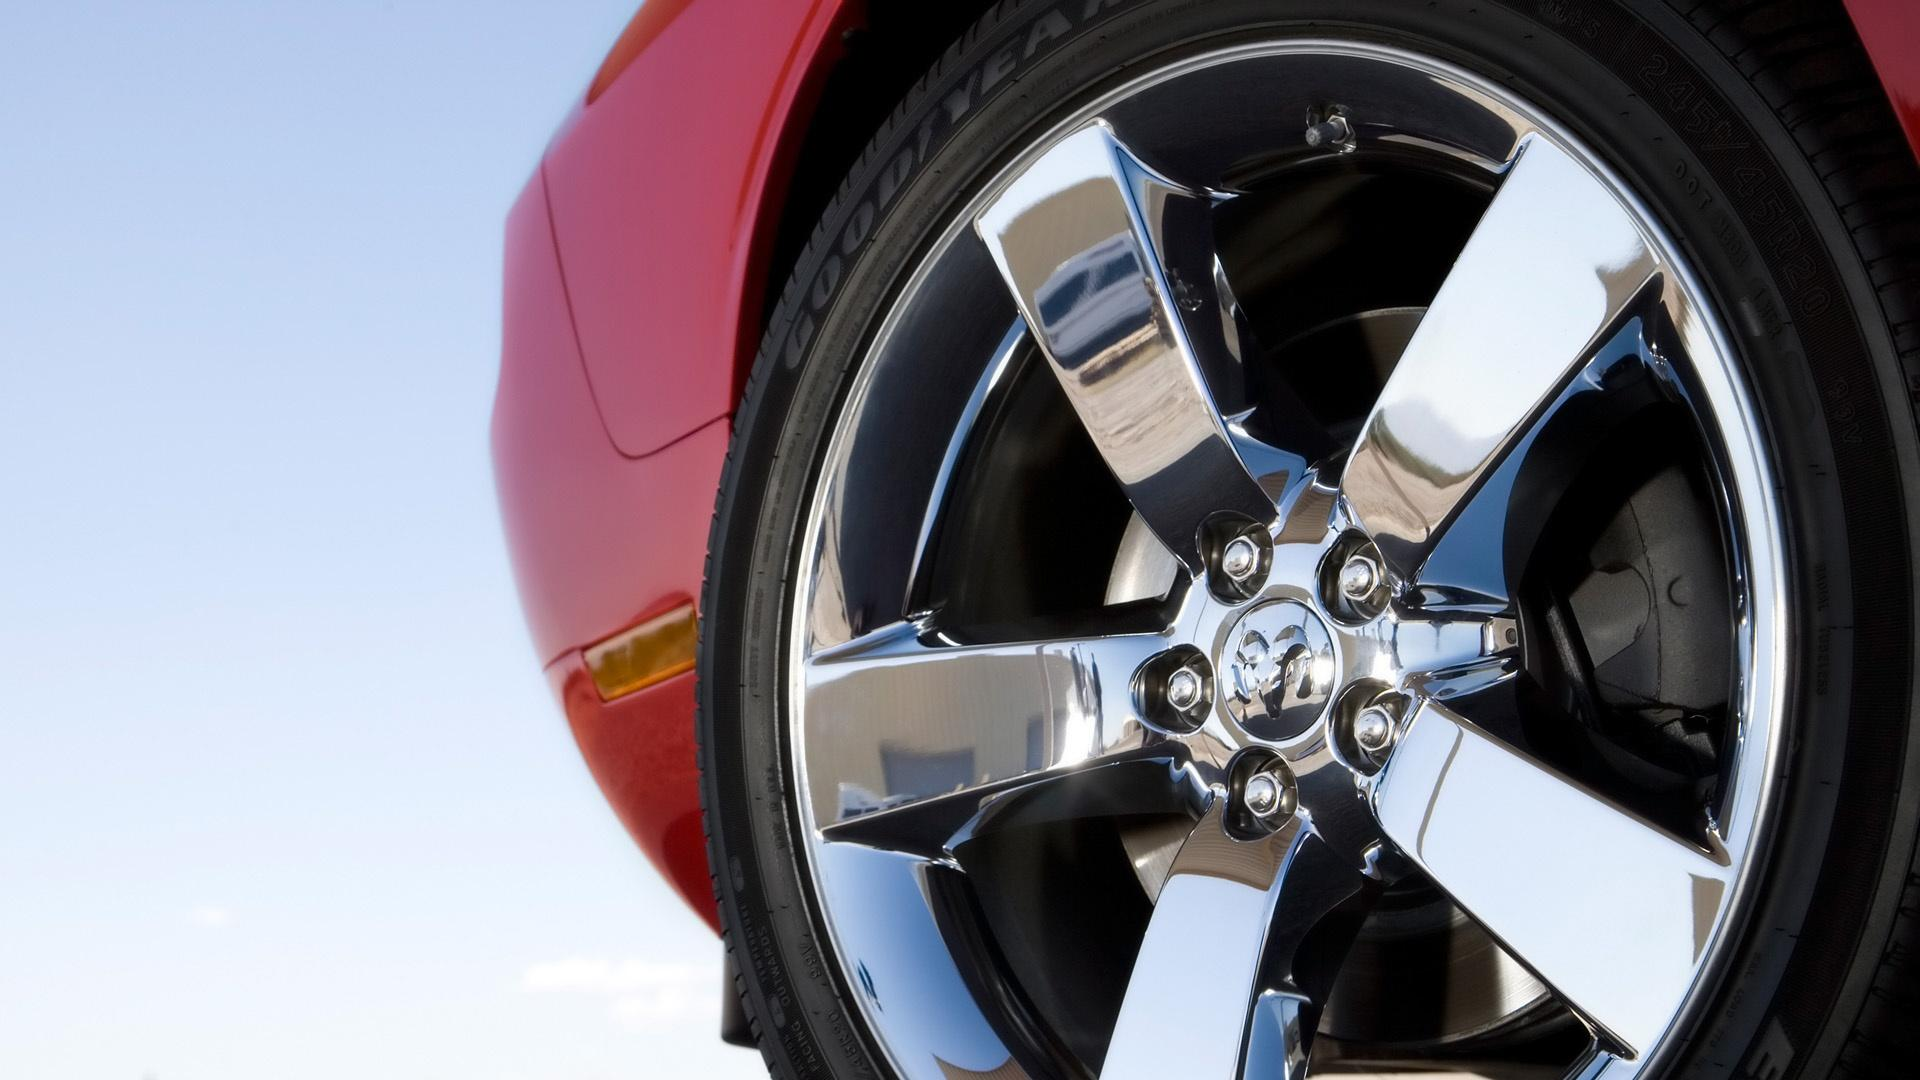 2009 Dodge Challenger Rt Wheel 1920x1080